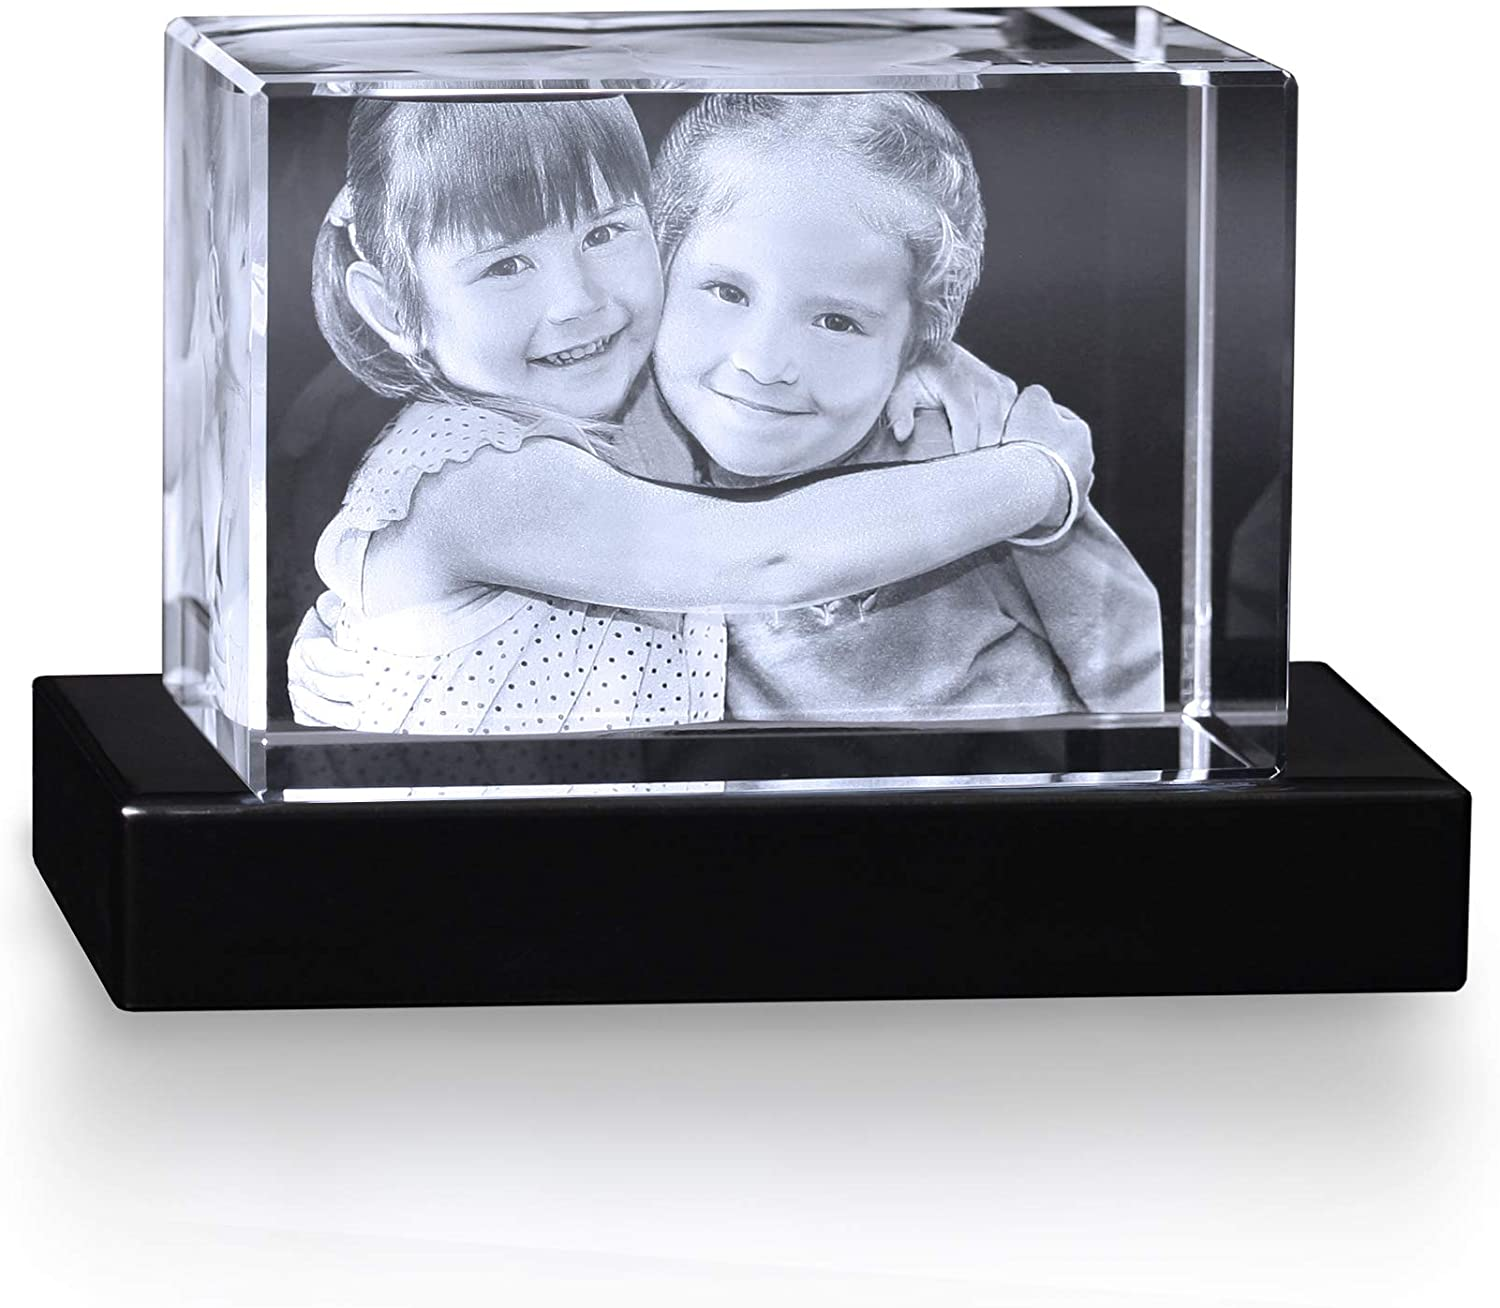 Crystal Impressions – XL Rectangle Customized Crystal Photo Picture with 3D Laser Engraved Photo Inside Crystal to Personalize Your Picture As A Gift or Paperweight & Includes Free Lighted Base